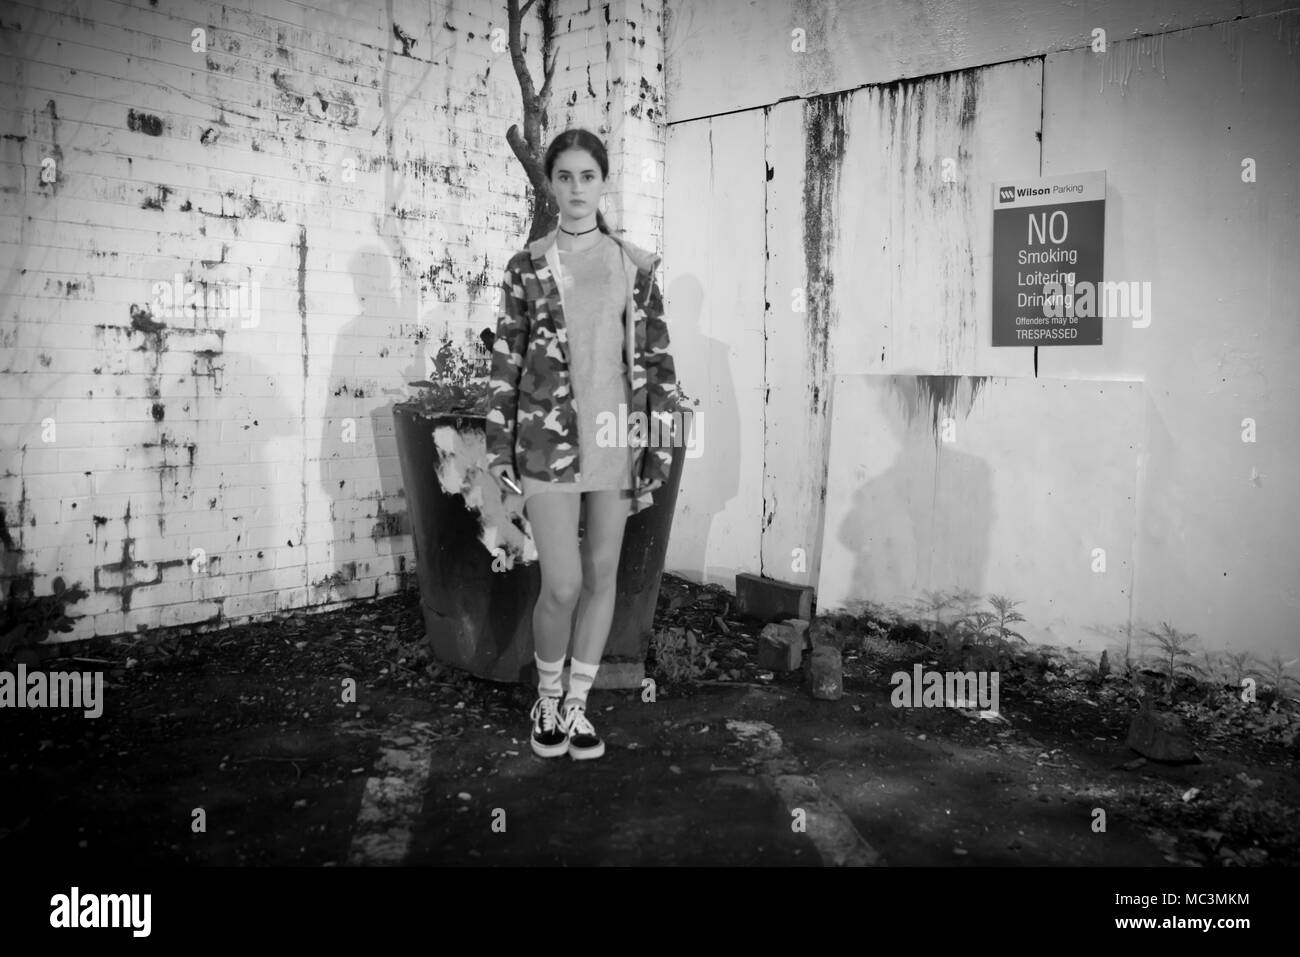 AUCKLAND, NEW ZEALAND - MARCH 25, 2018; Deadpan night scene grainy dark image girl  standing straight faced  in front grungy wall in monochrome with N - Stock Image